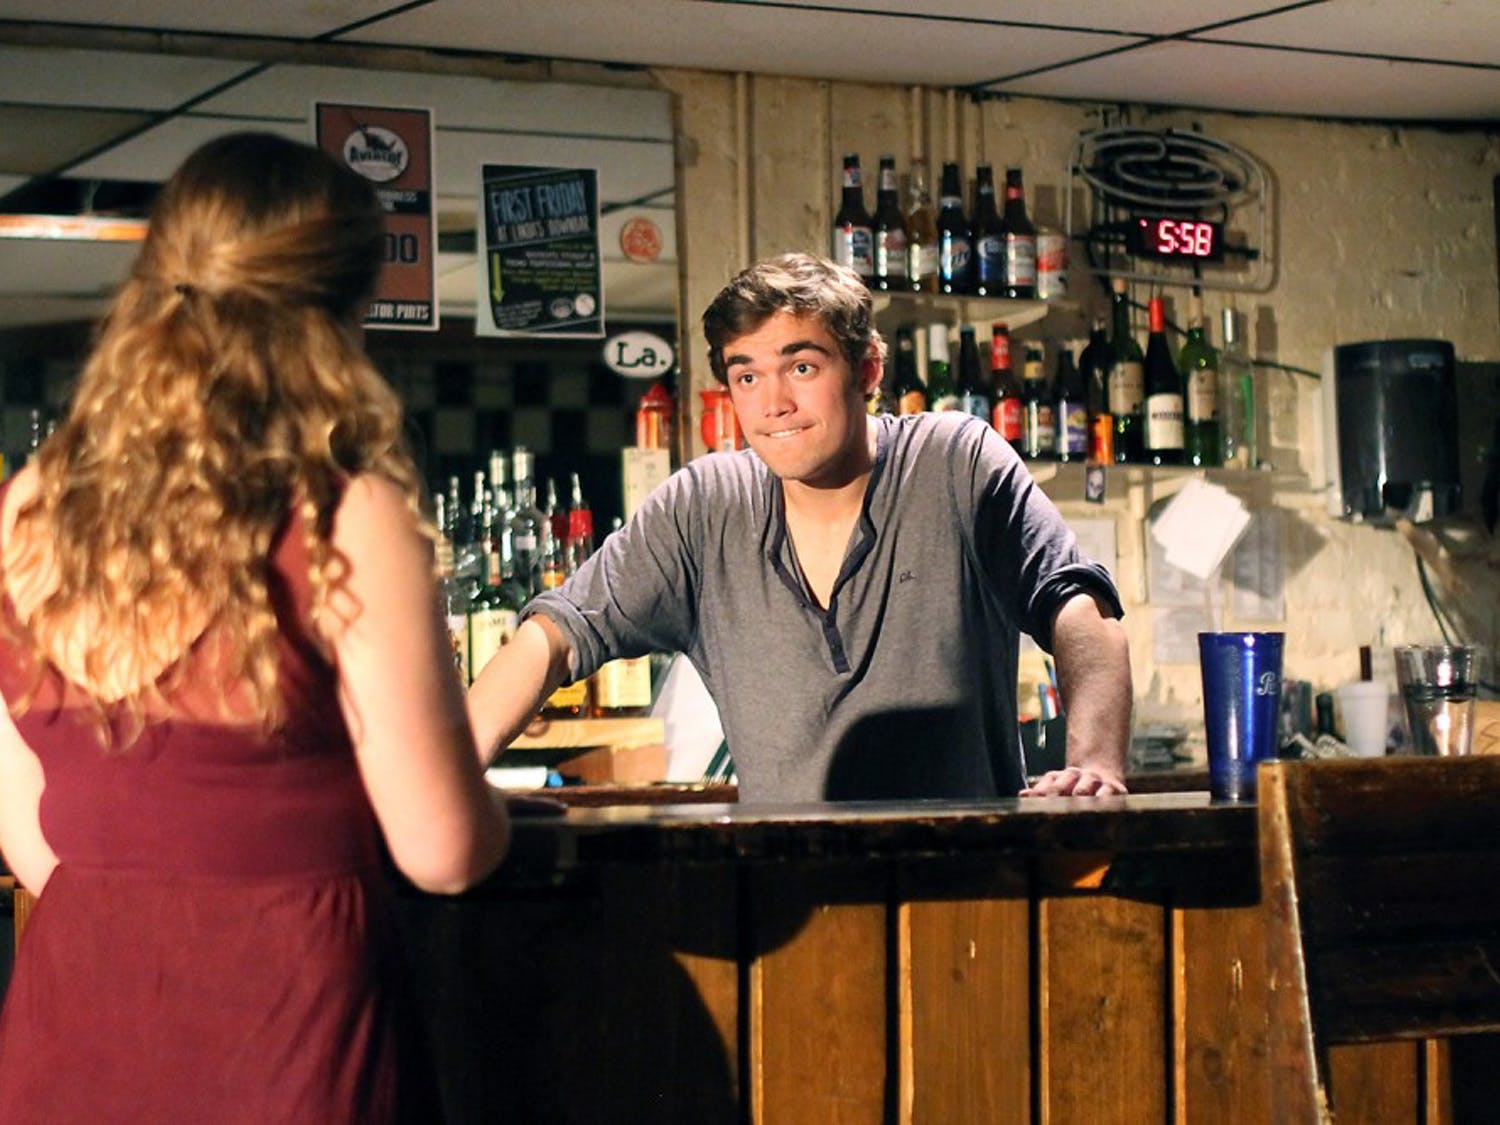 Camille Oswald (left) plays W and Sam Fletcher (right) plays John in Lab! Theatre's production of Cock.